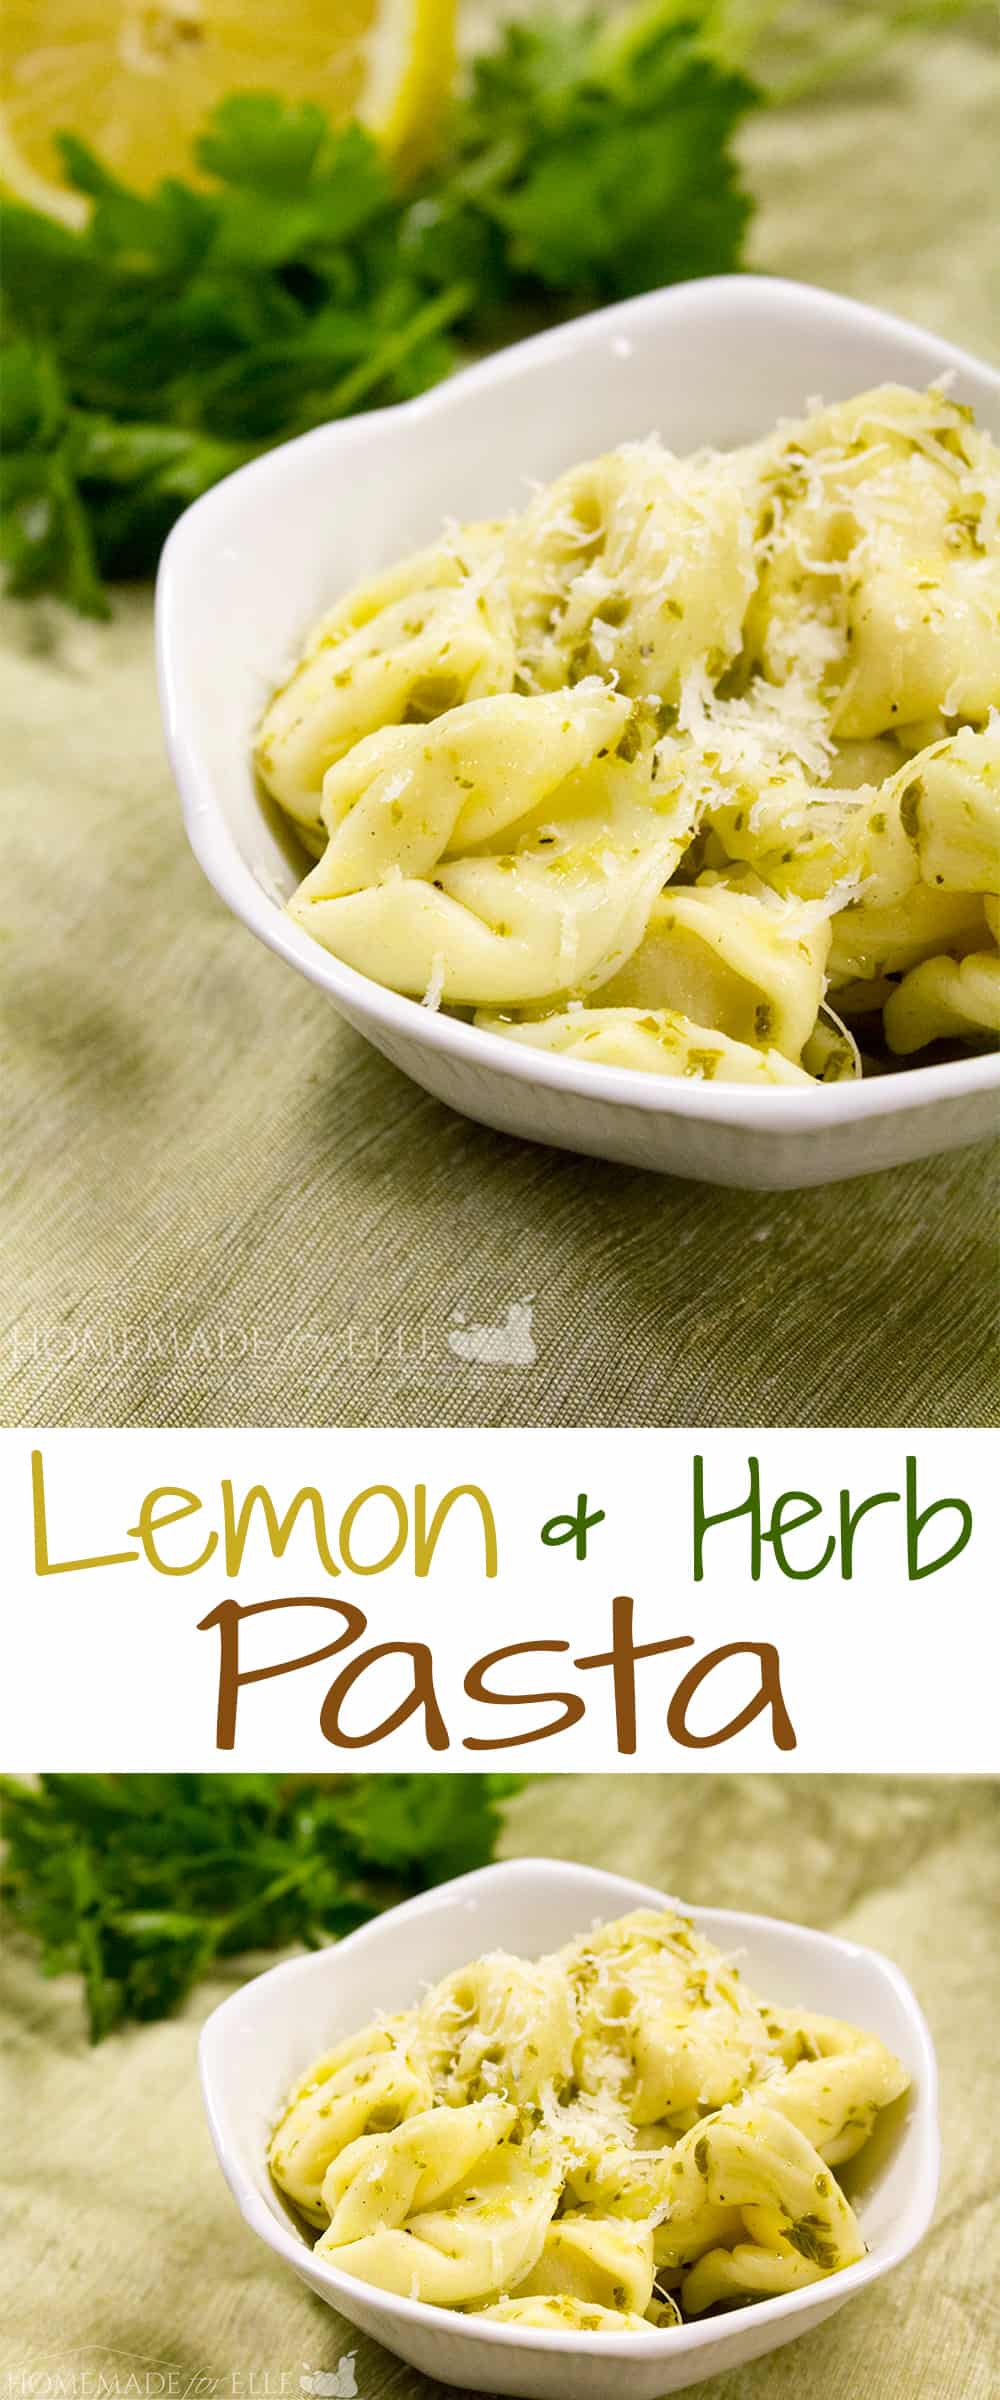 Lemon and herb pasta